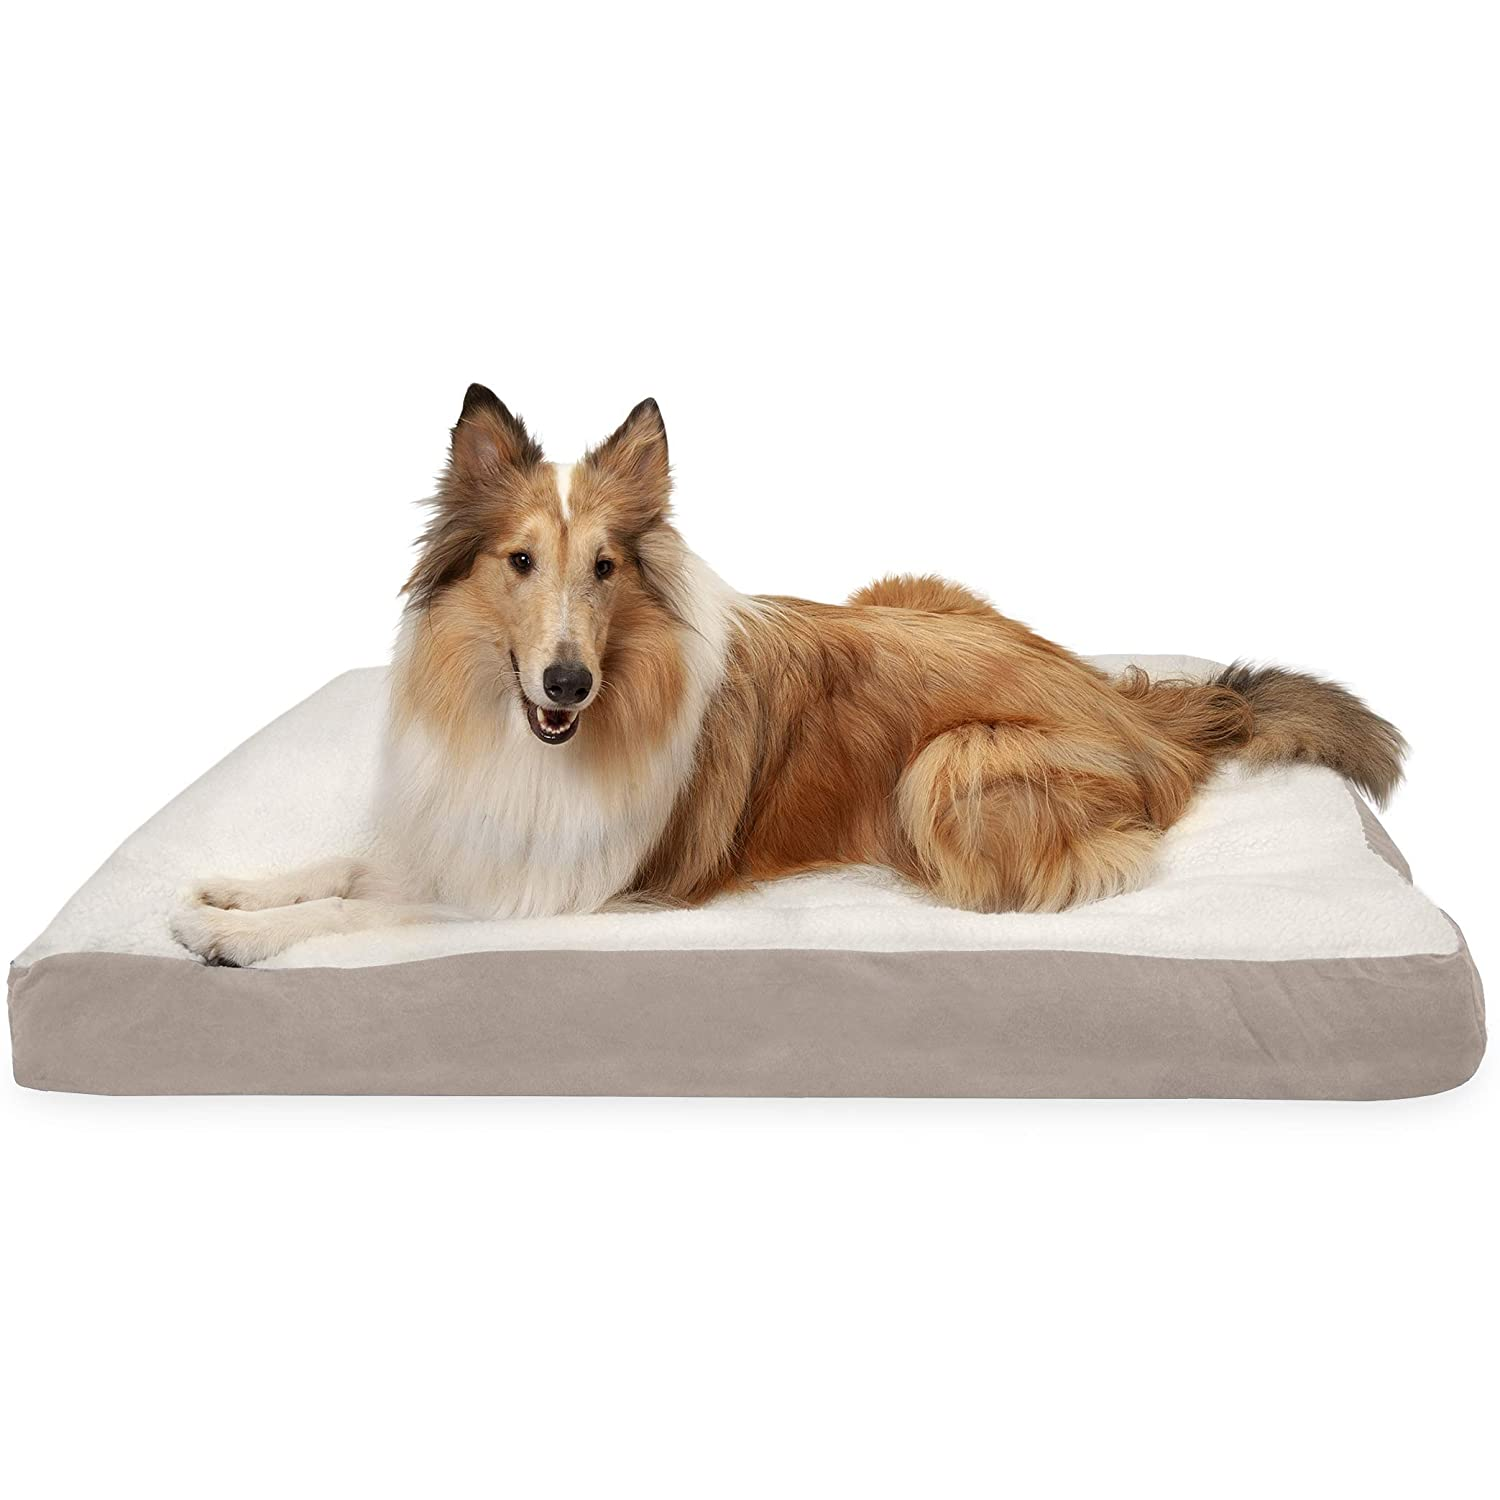 Cream Clay XL Cream Clay XL Furhaven Pet Sherpa and Suede Deluxe Fiber Pillow Dog Bed with Water-Resistant Base, Cream Clay, X-Large